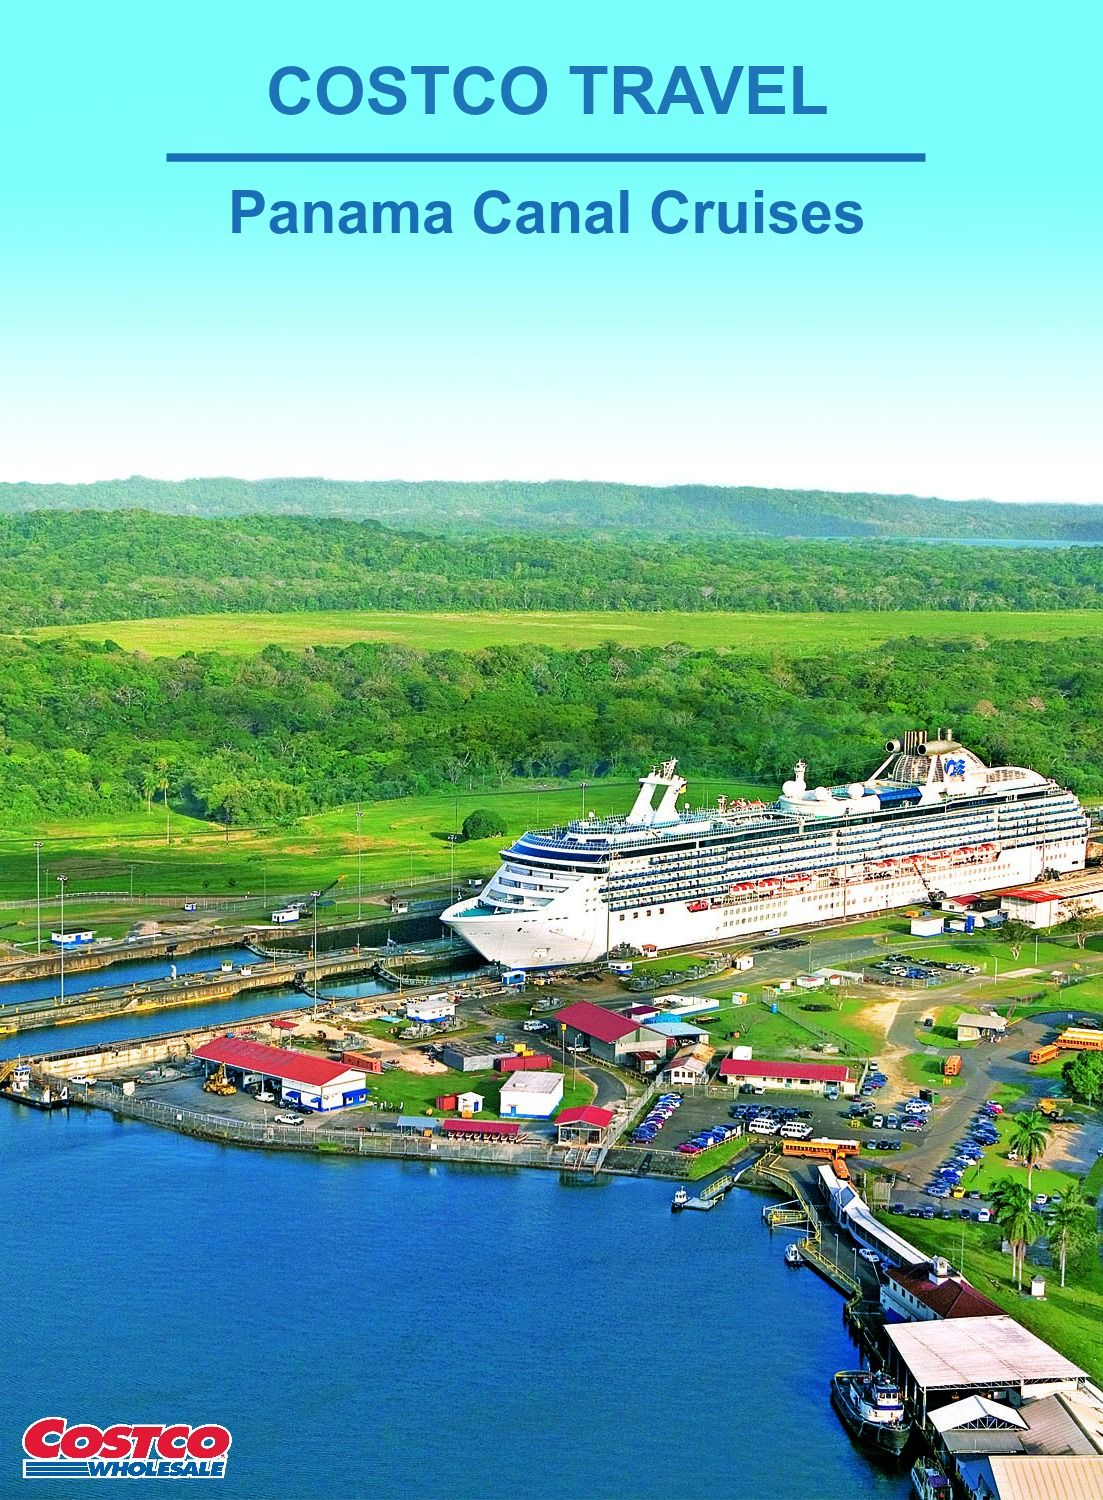 Panama Canal cruises with Costco Travel Travel the world